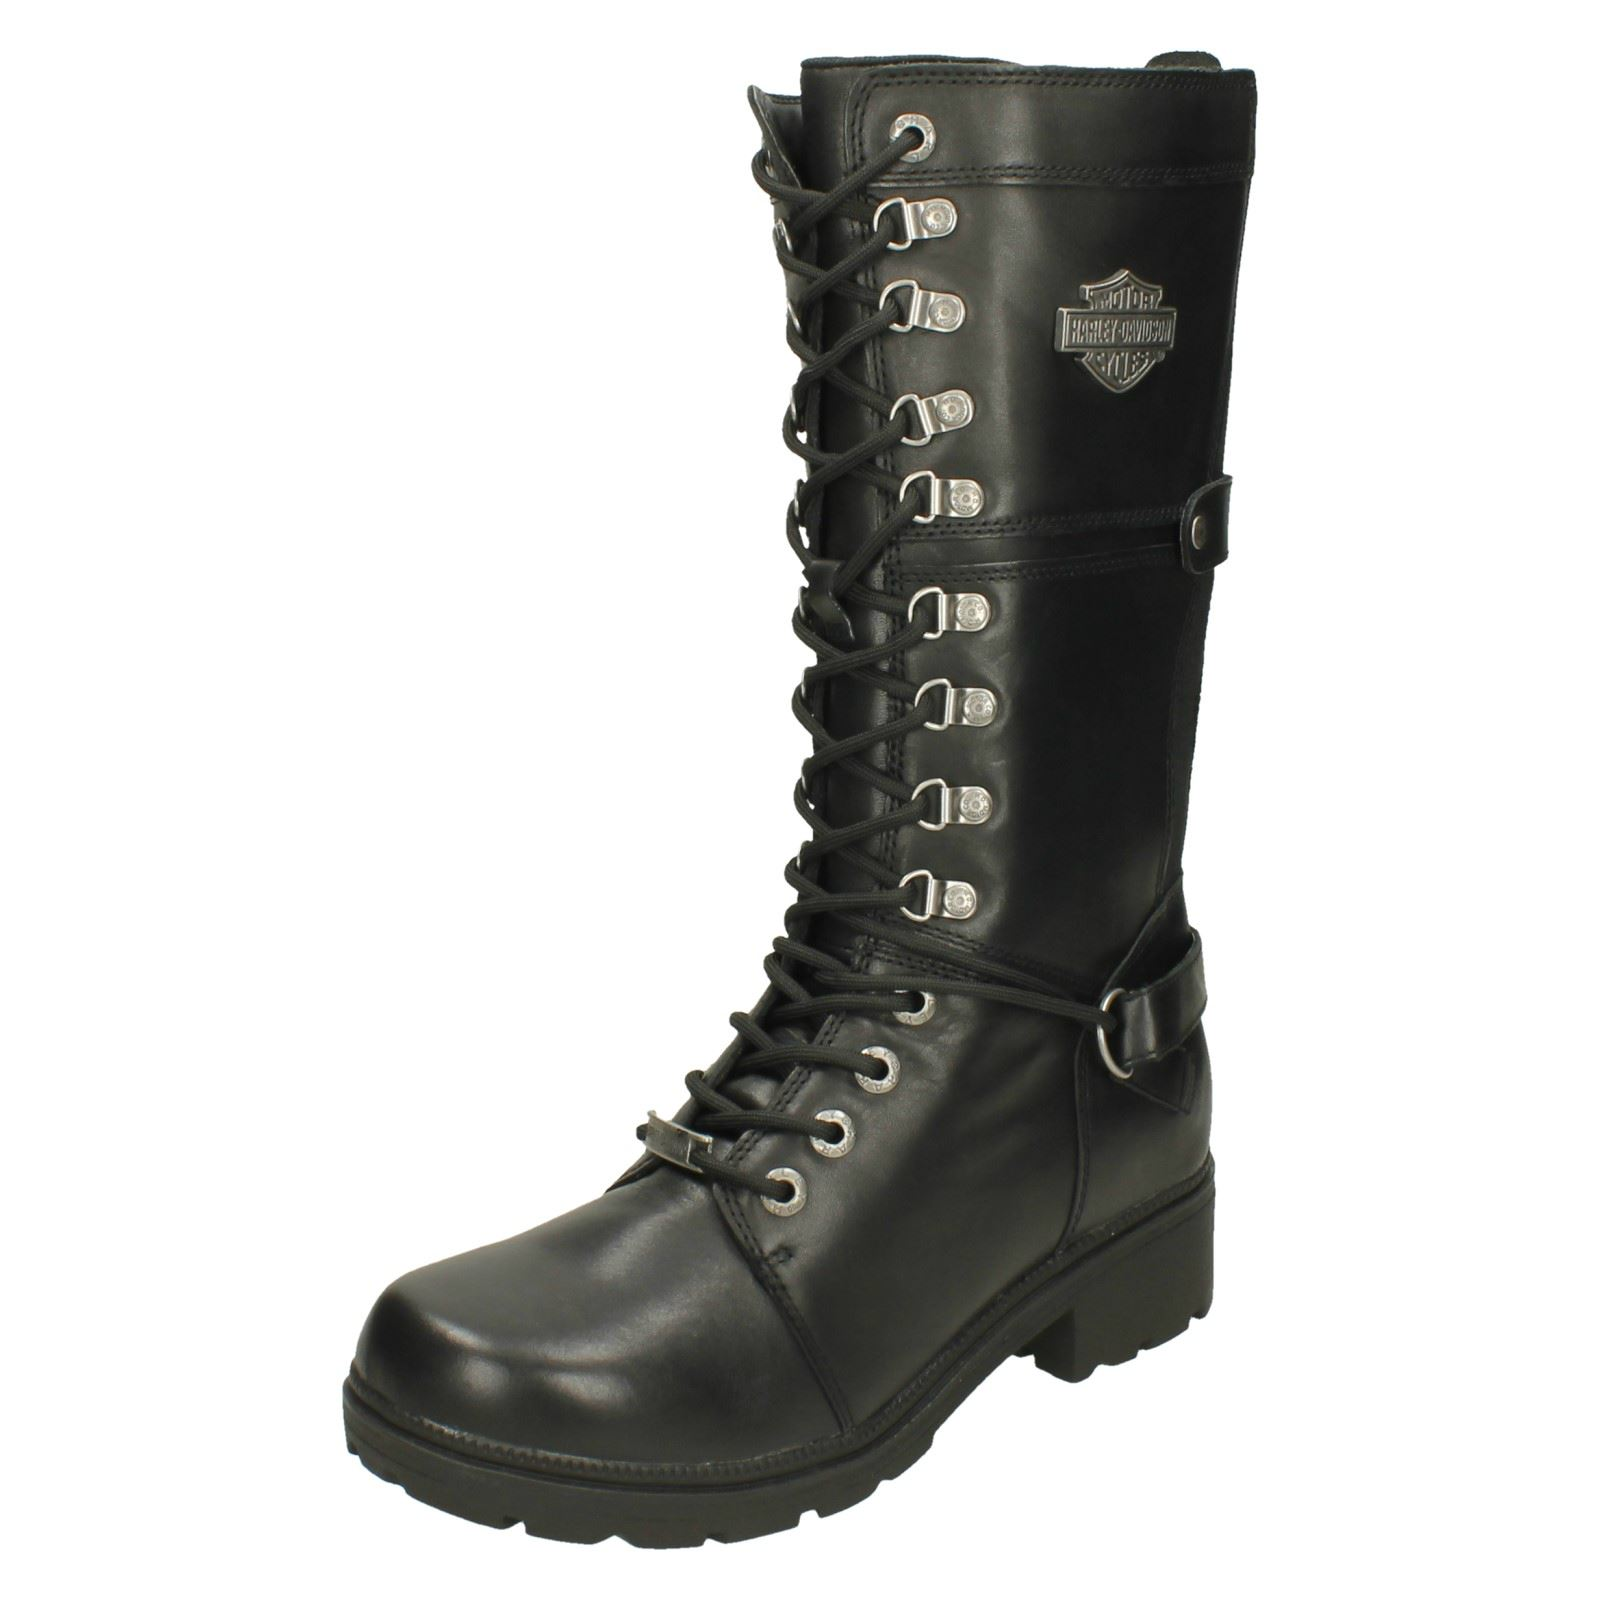 Damenschuhe Damenschuhe Damenschuhe Harley Davidson Long Stiefel 'Harland D83987' e5b1eb